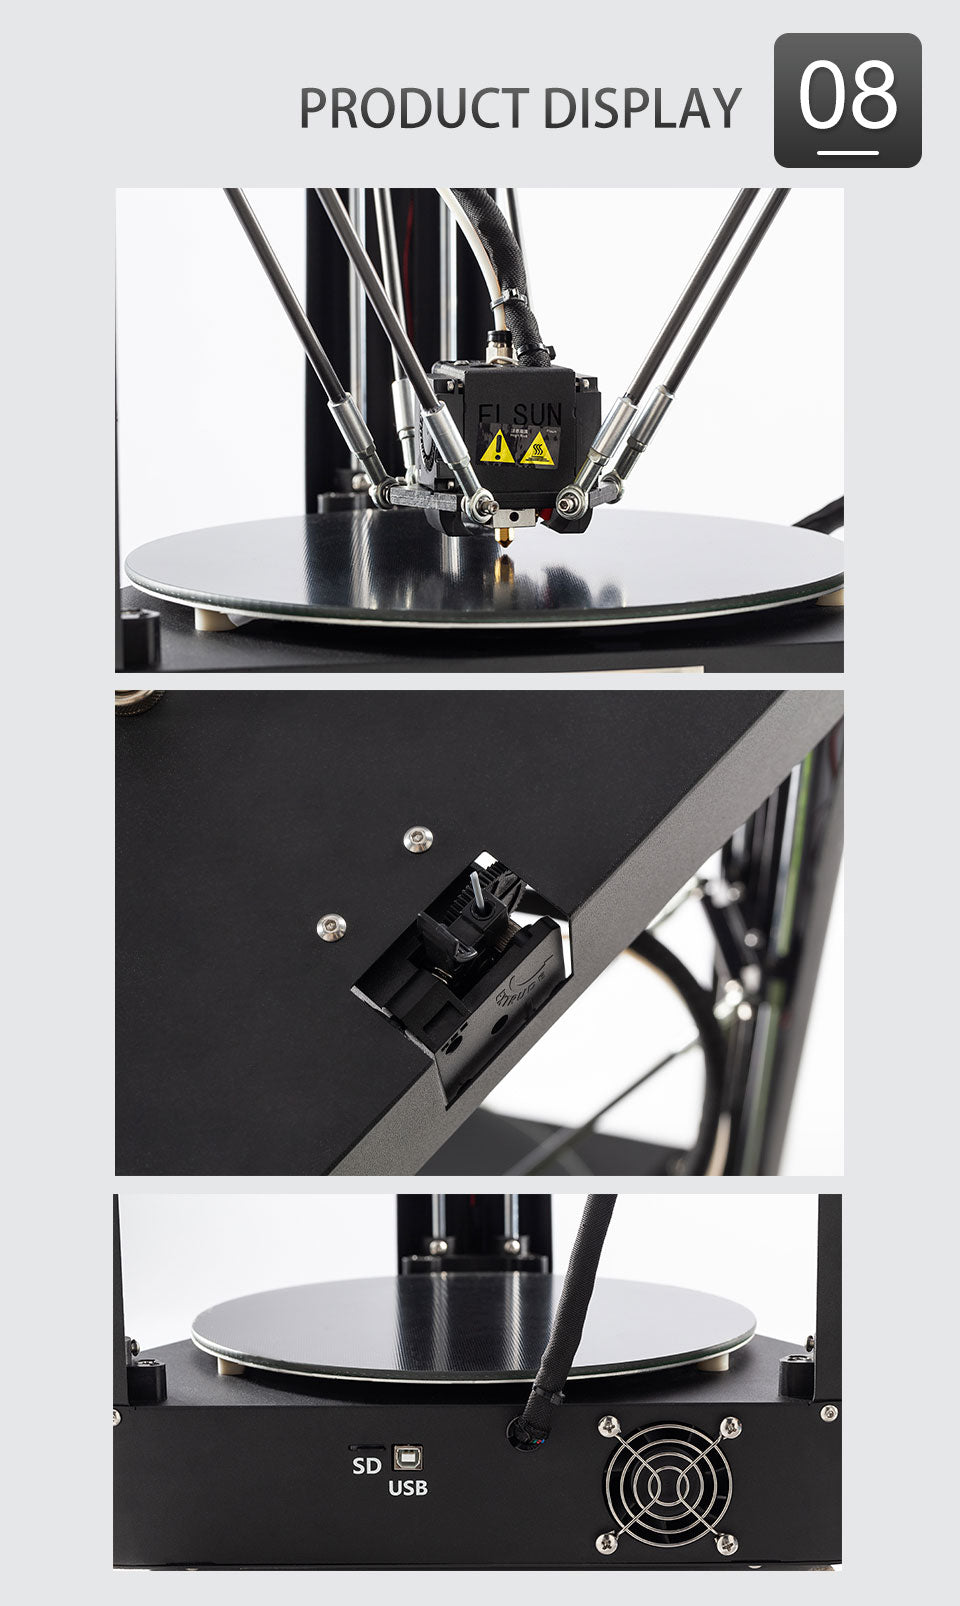 Flsun QQ-S Pro is the perfect 3D printer for people in Perth who are looking for an affordable device that is fast, can produce large prints, and is user-friendly.